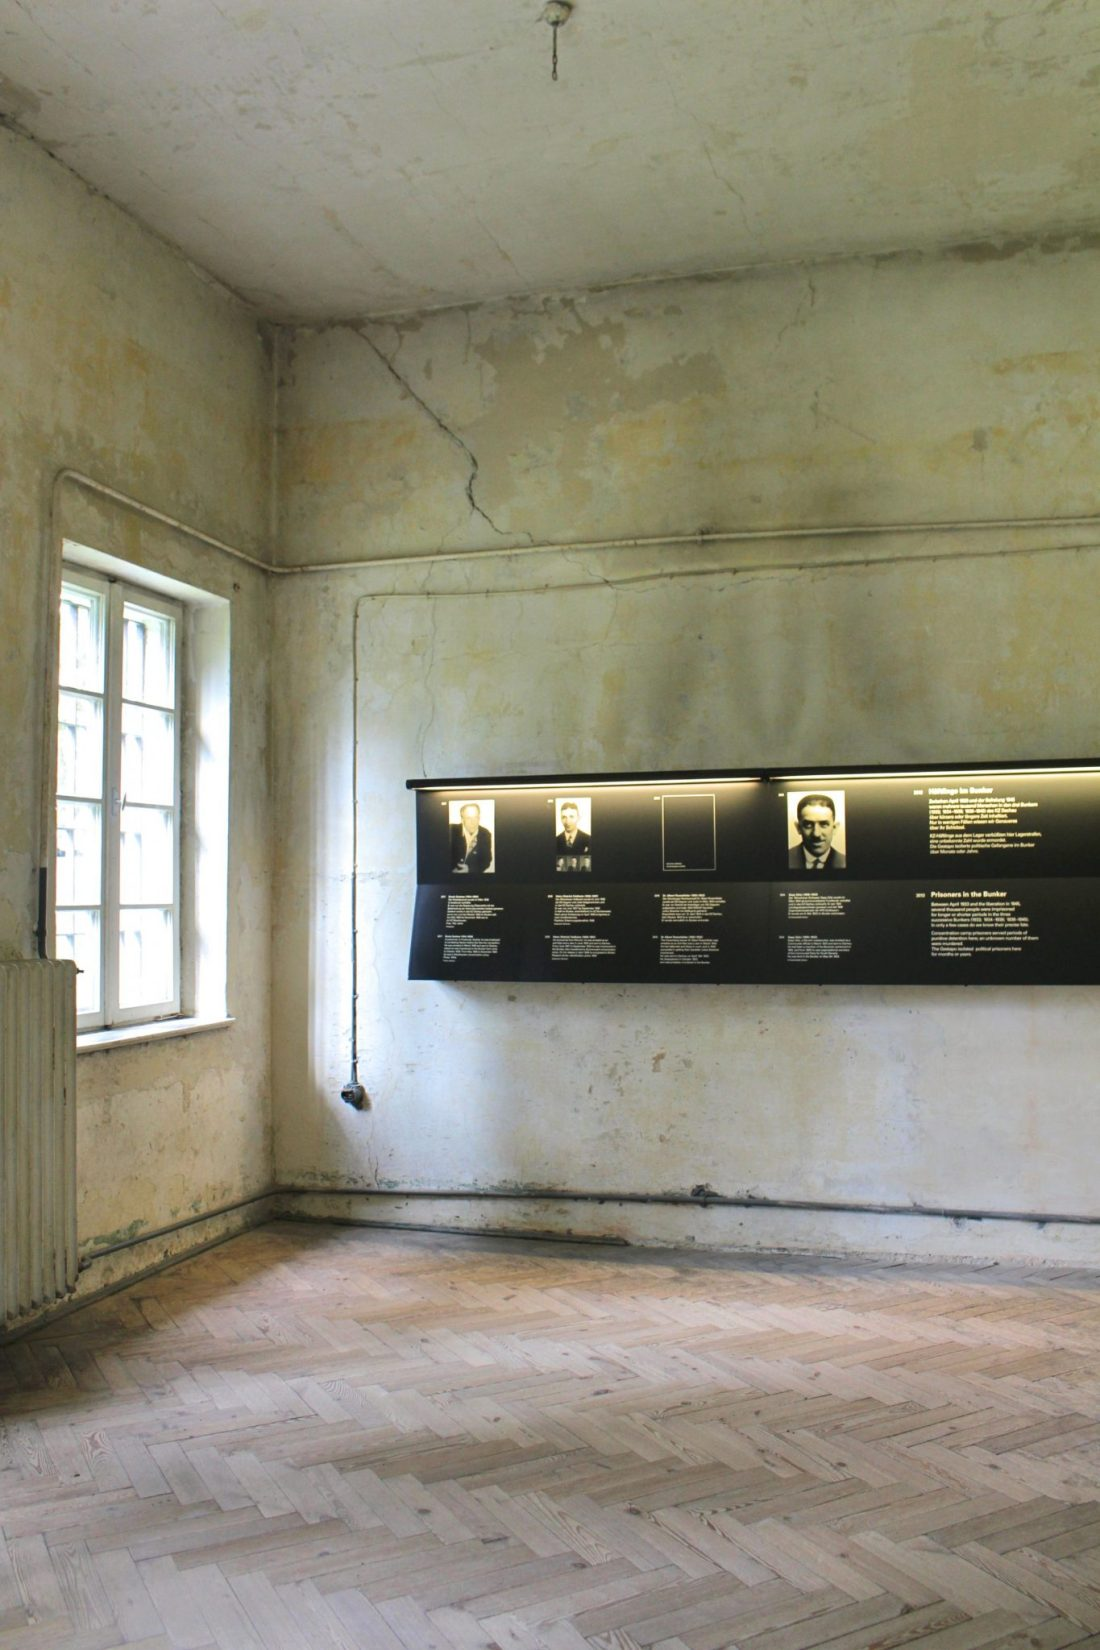 Dachau Bunker Interior. Visiting Dachau Concentration Camp Memorial Site https://thatanxioustraveller.com #europe #travel #munich #dachau #history